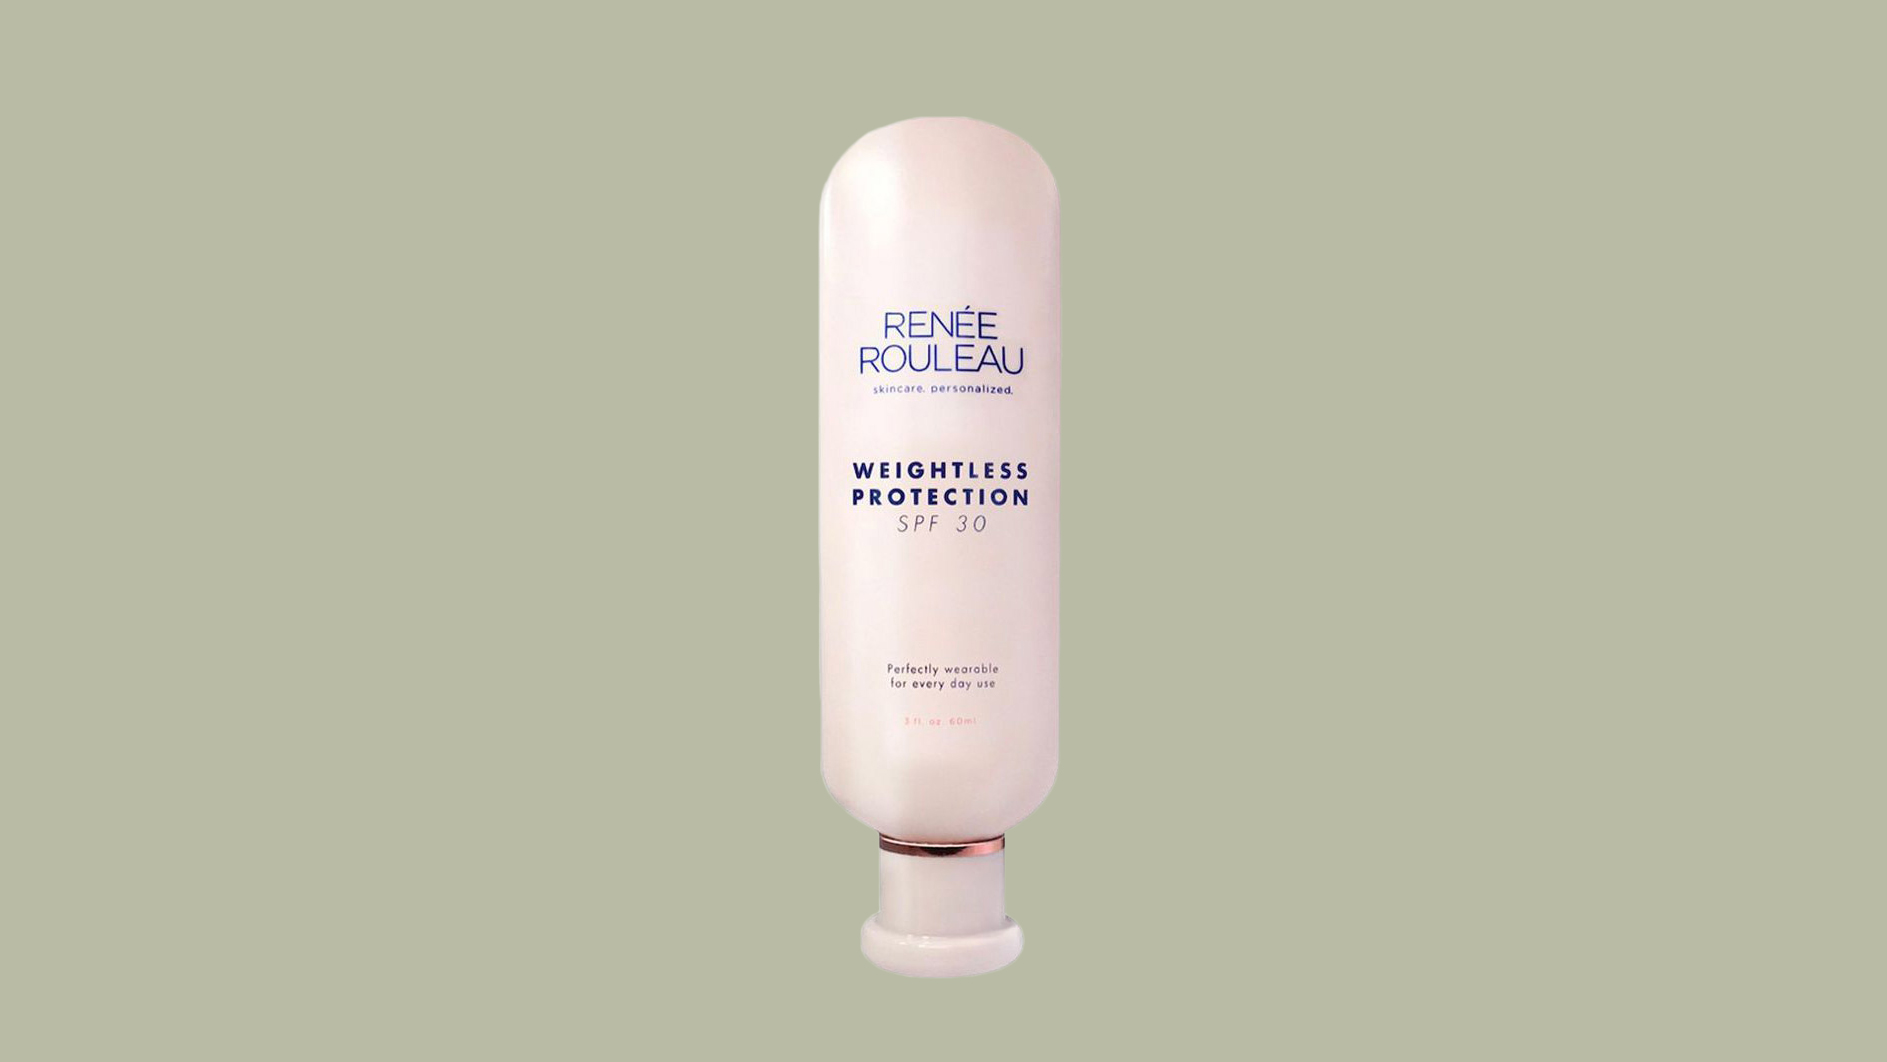 Renée Rouleau Weightless Protection SPF 30